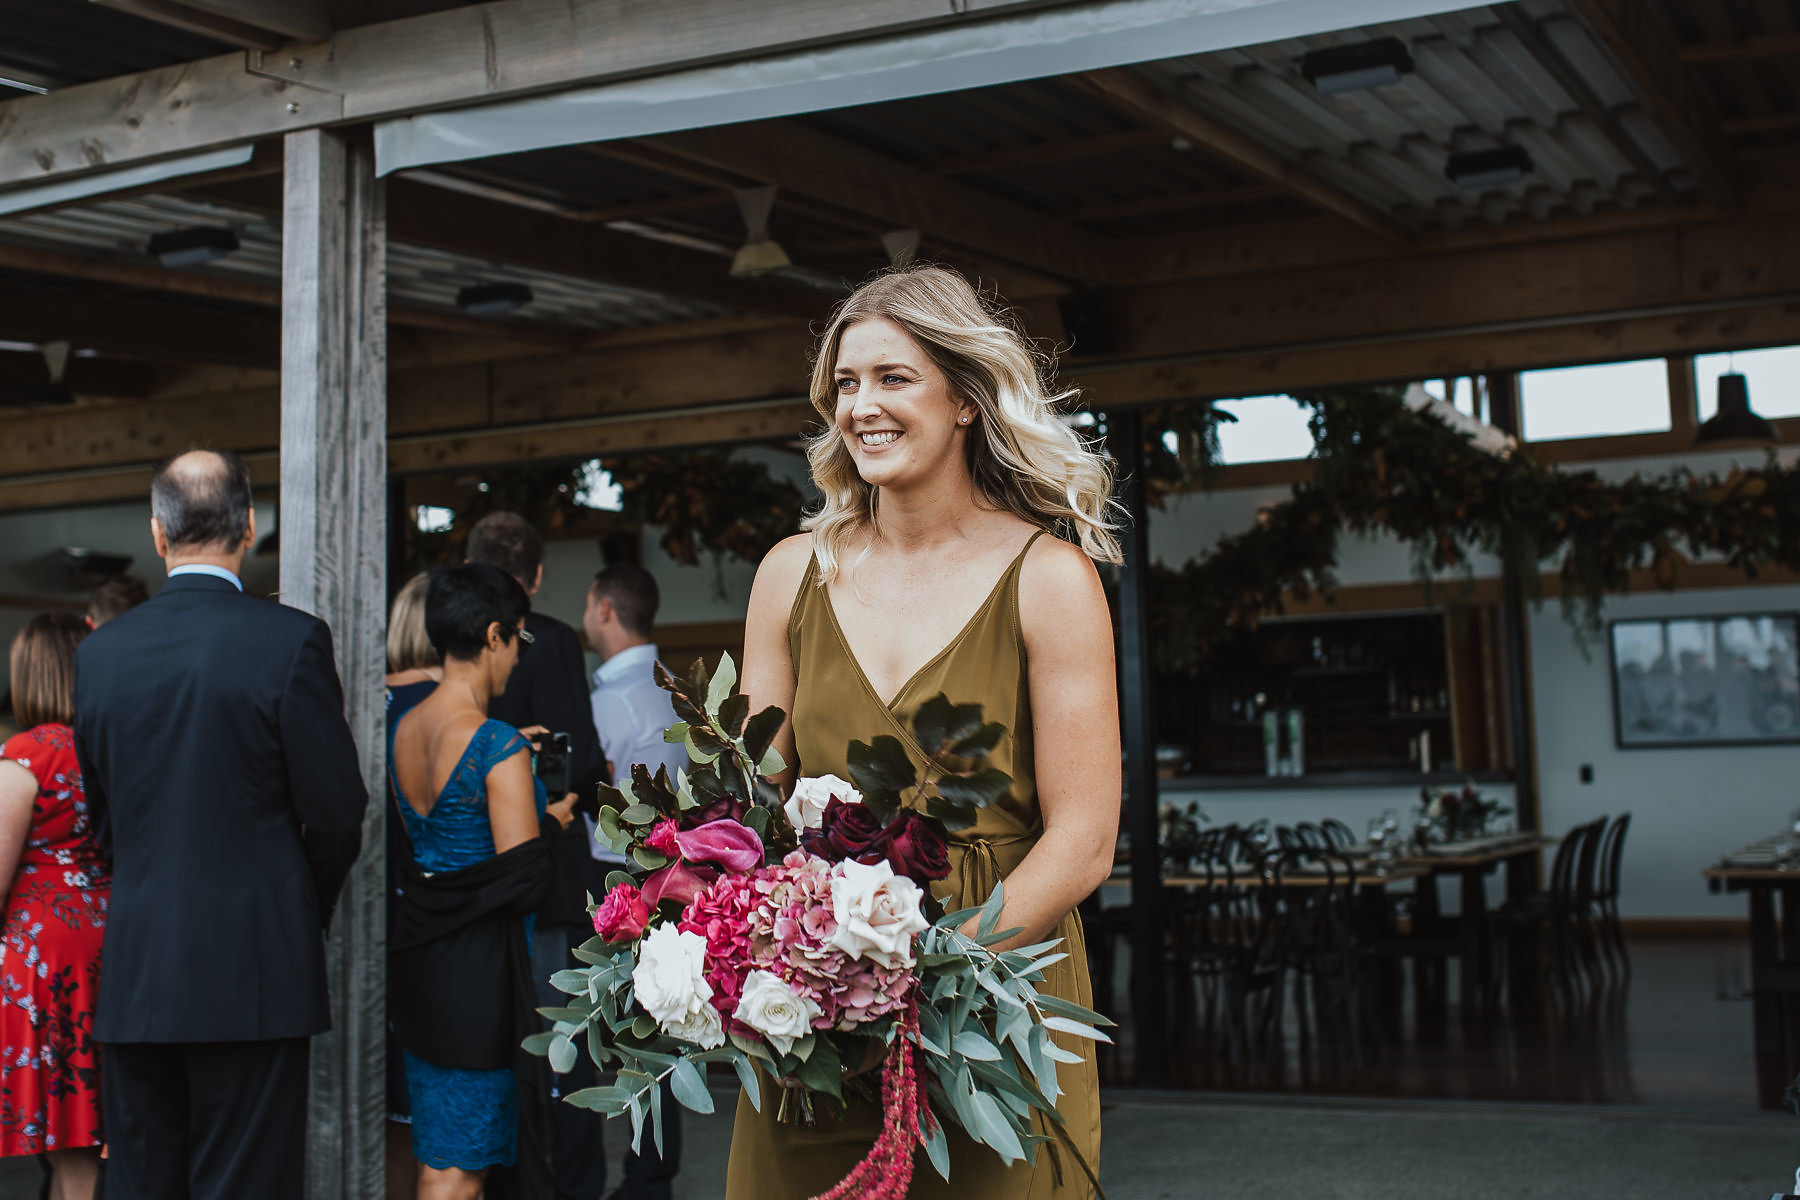 Categories: Weddings-Real Wedding: Lucy & Grant - Photography by Coralee Stone